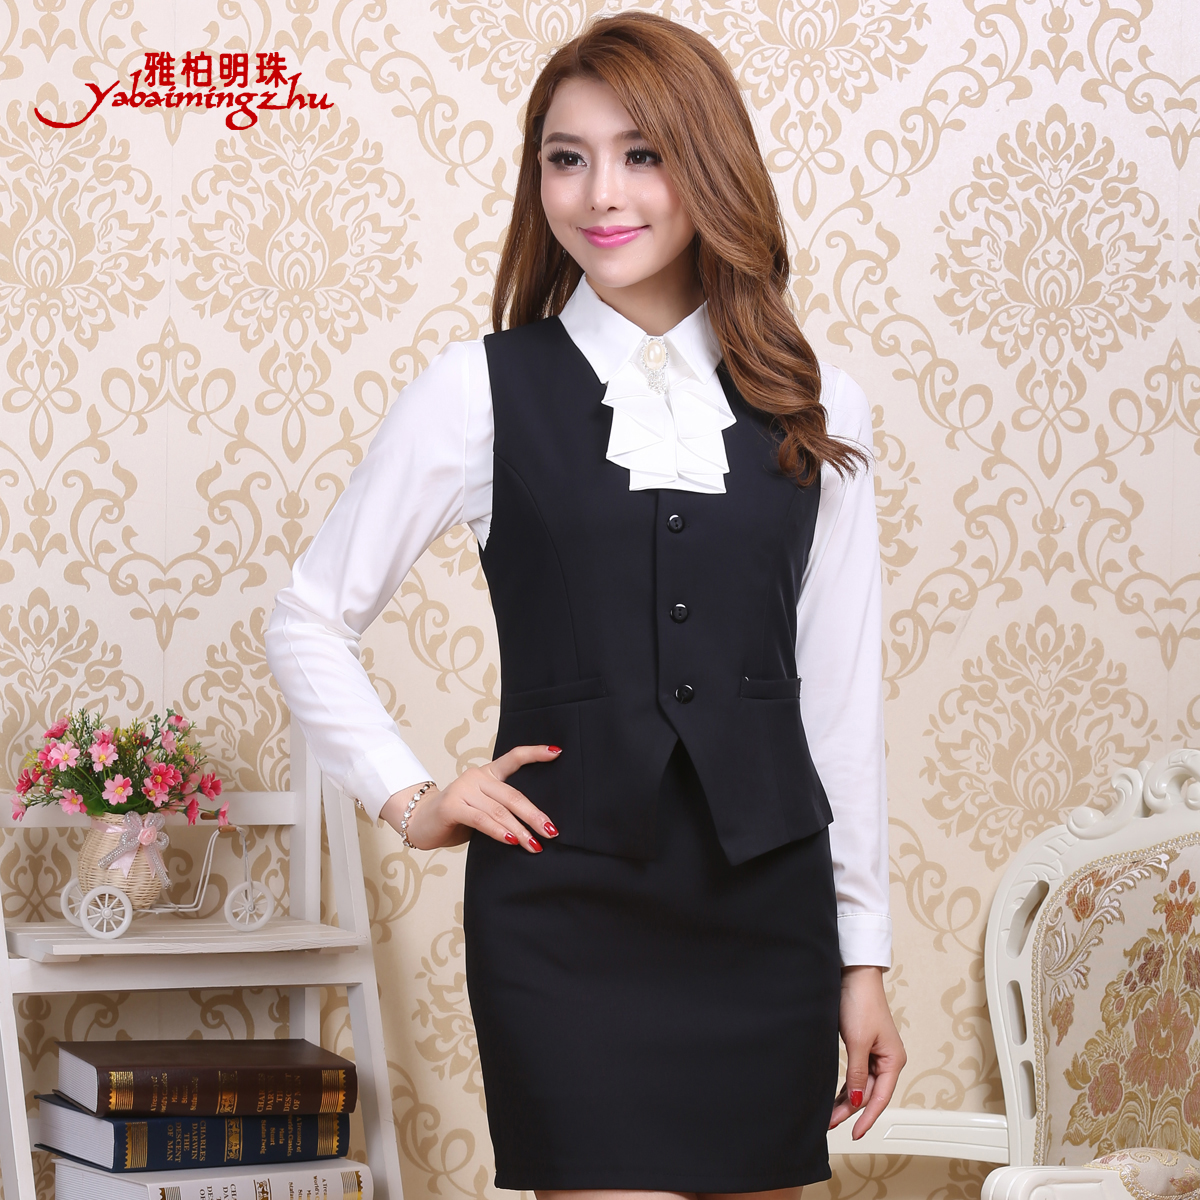 Office of the bank hotel uniforms vest miss ma jia autumn black slim vest vest vest women wear